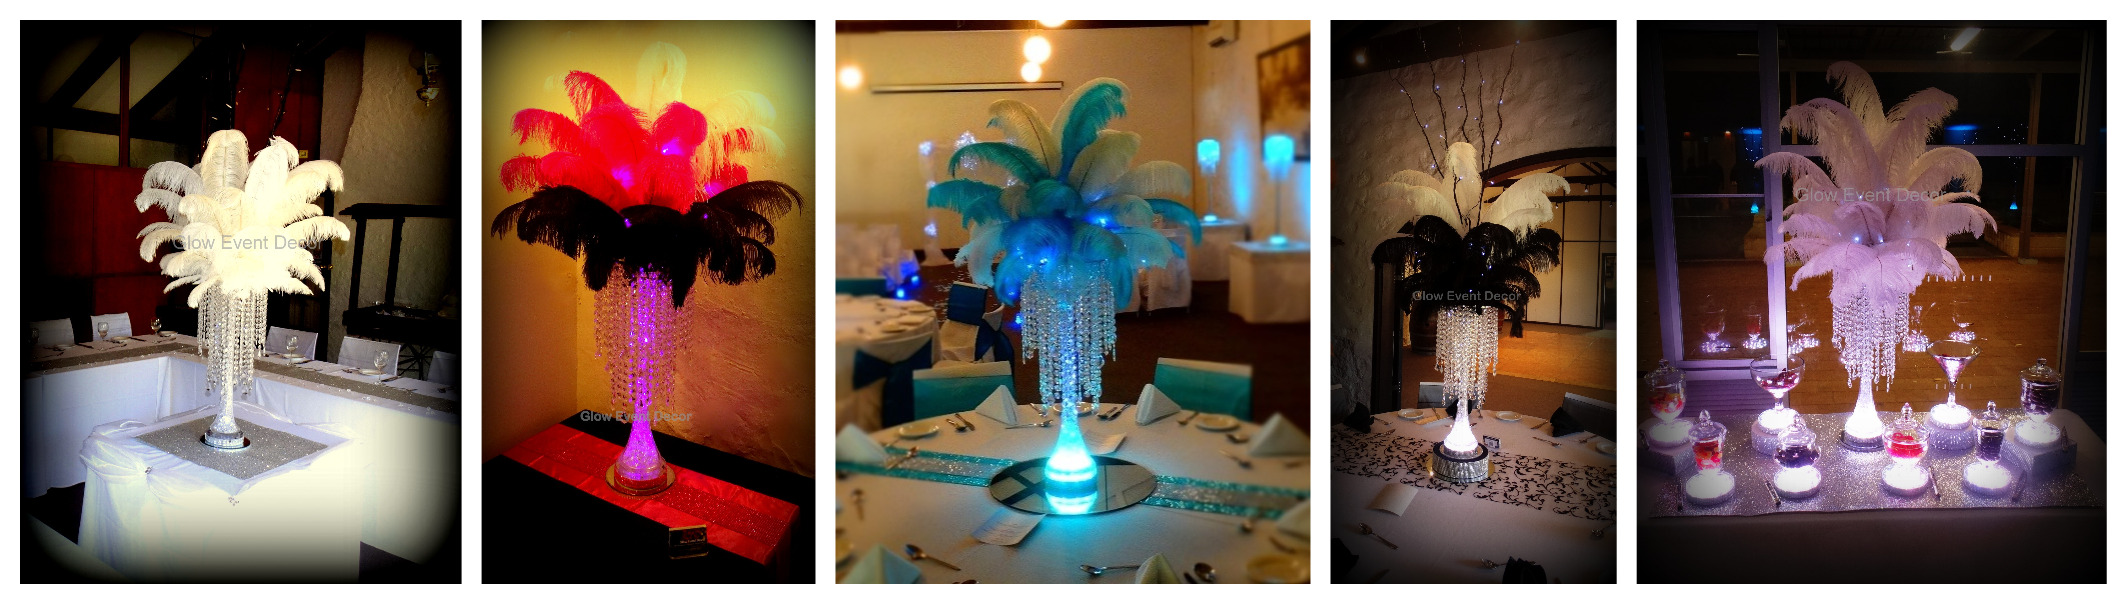 Ostrich feather table centrepiece decorations with LED eiffel tower vase, and LED lighting, available for hire from glow event decor in adelaide